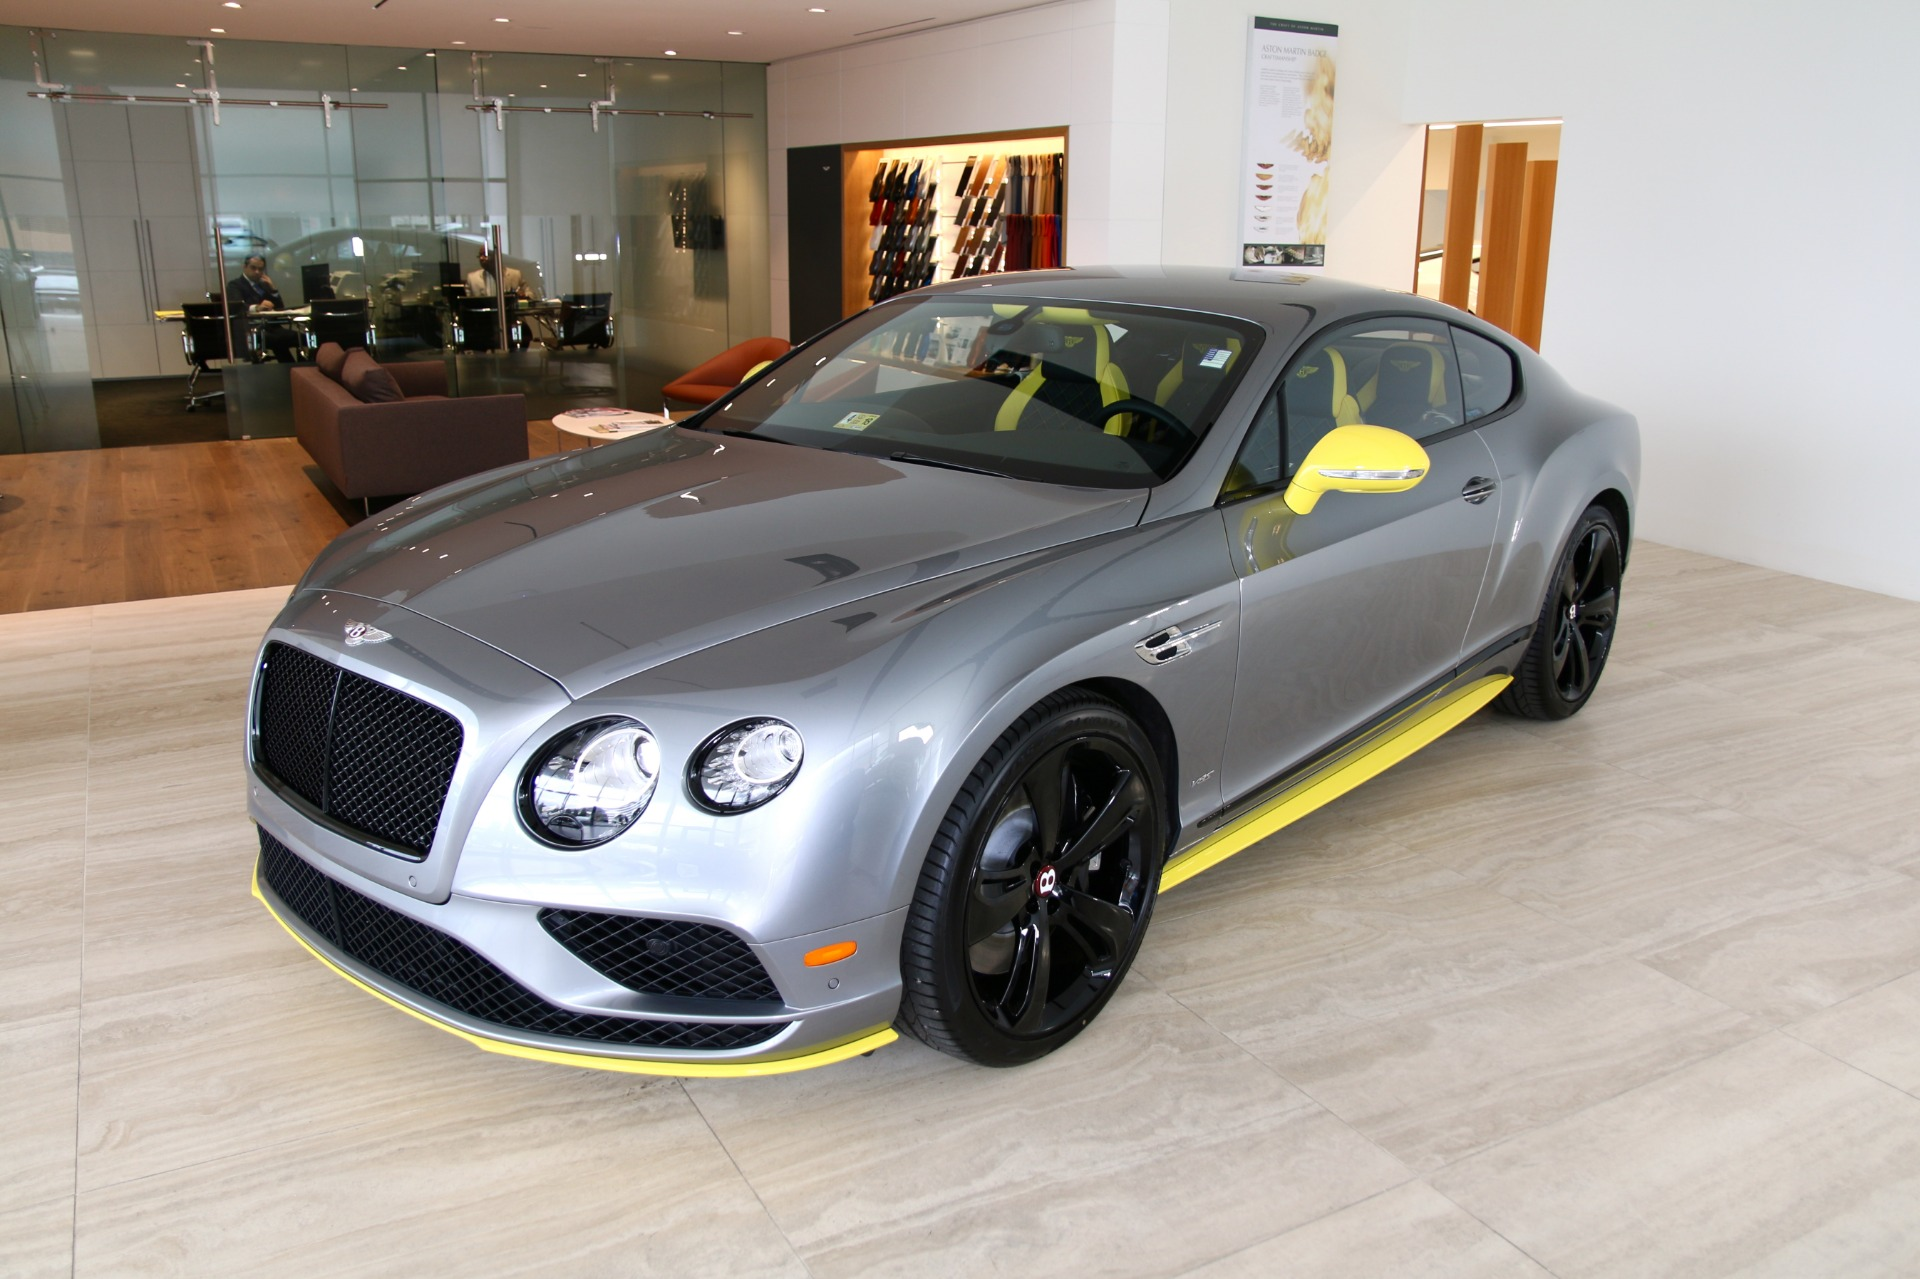 Bentley continental gt black speed edition announced for australia.